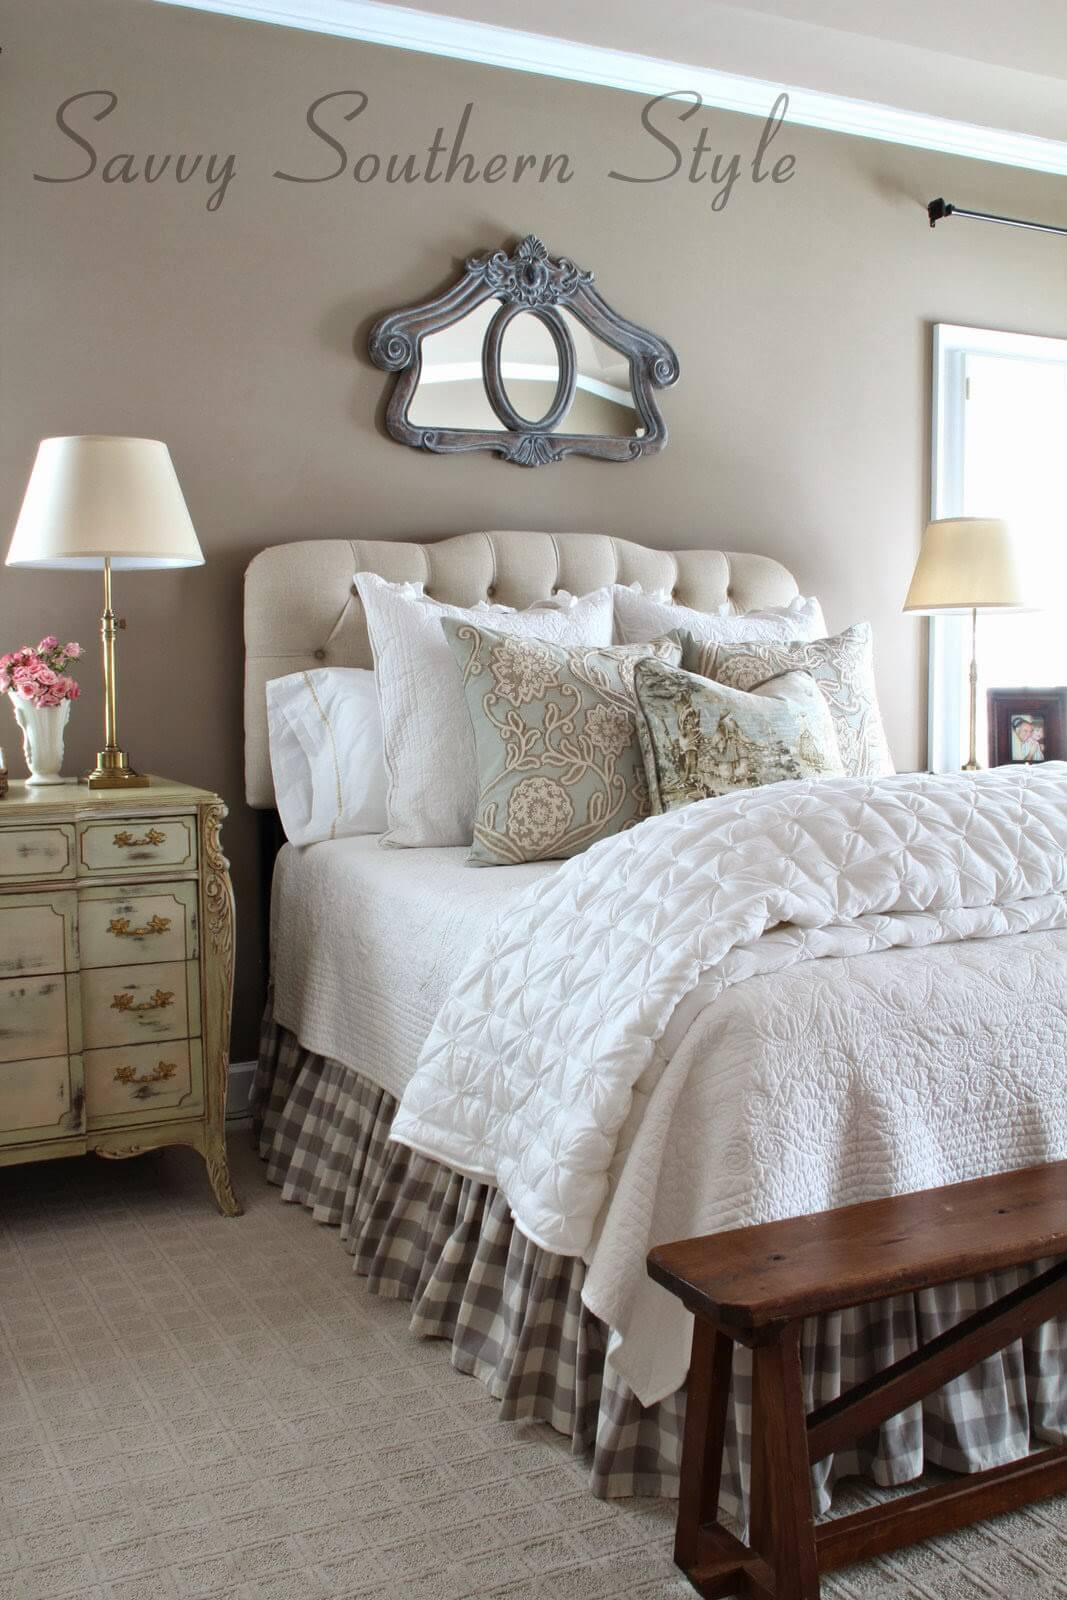 Tufted Headboard and Ornate Mirror